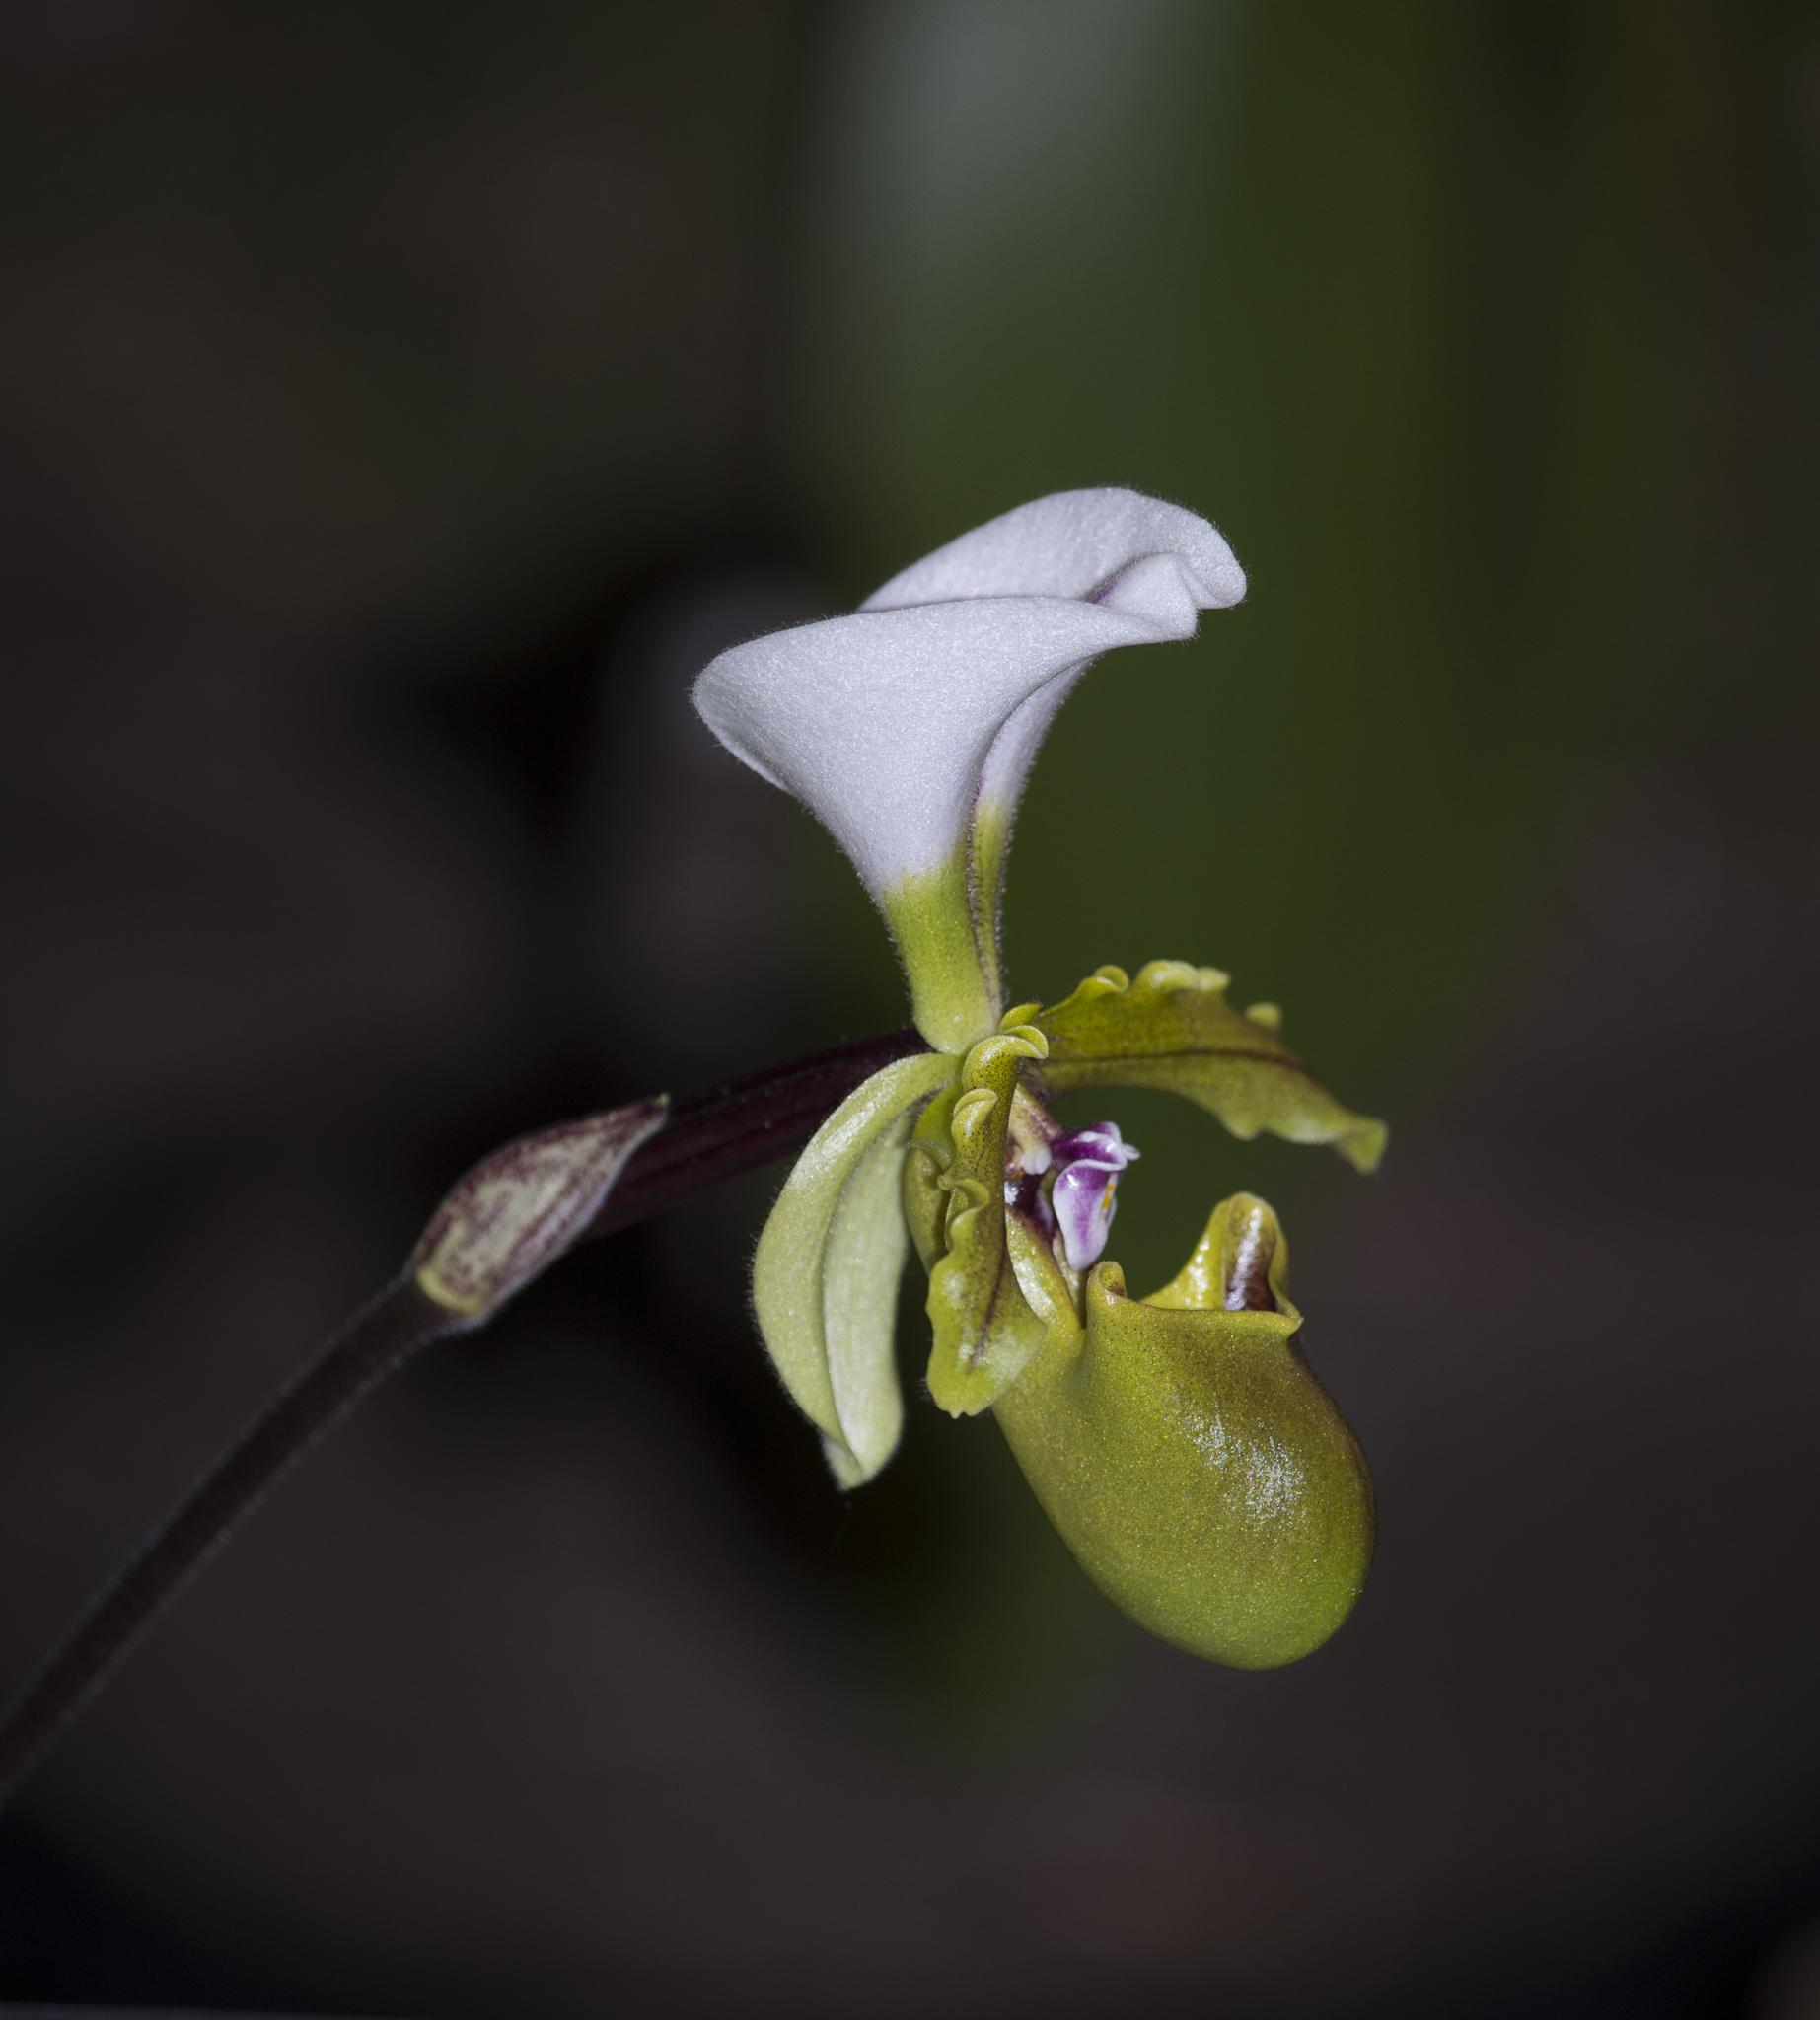 Orchid by Eugenie Robitaille